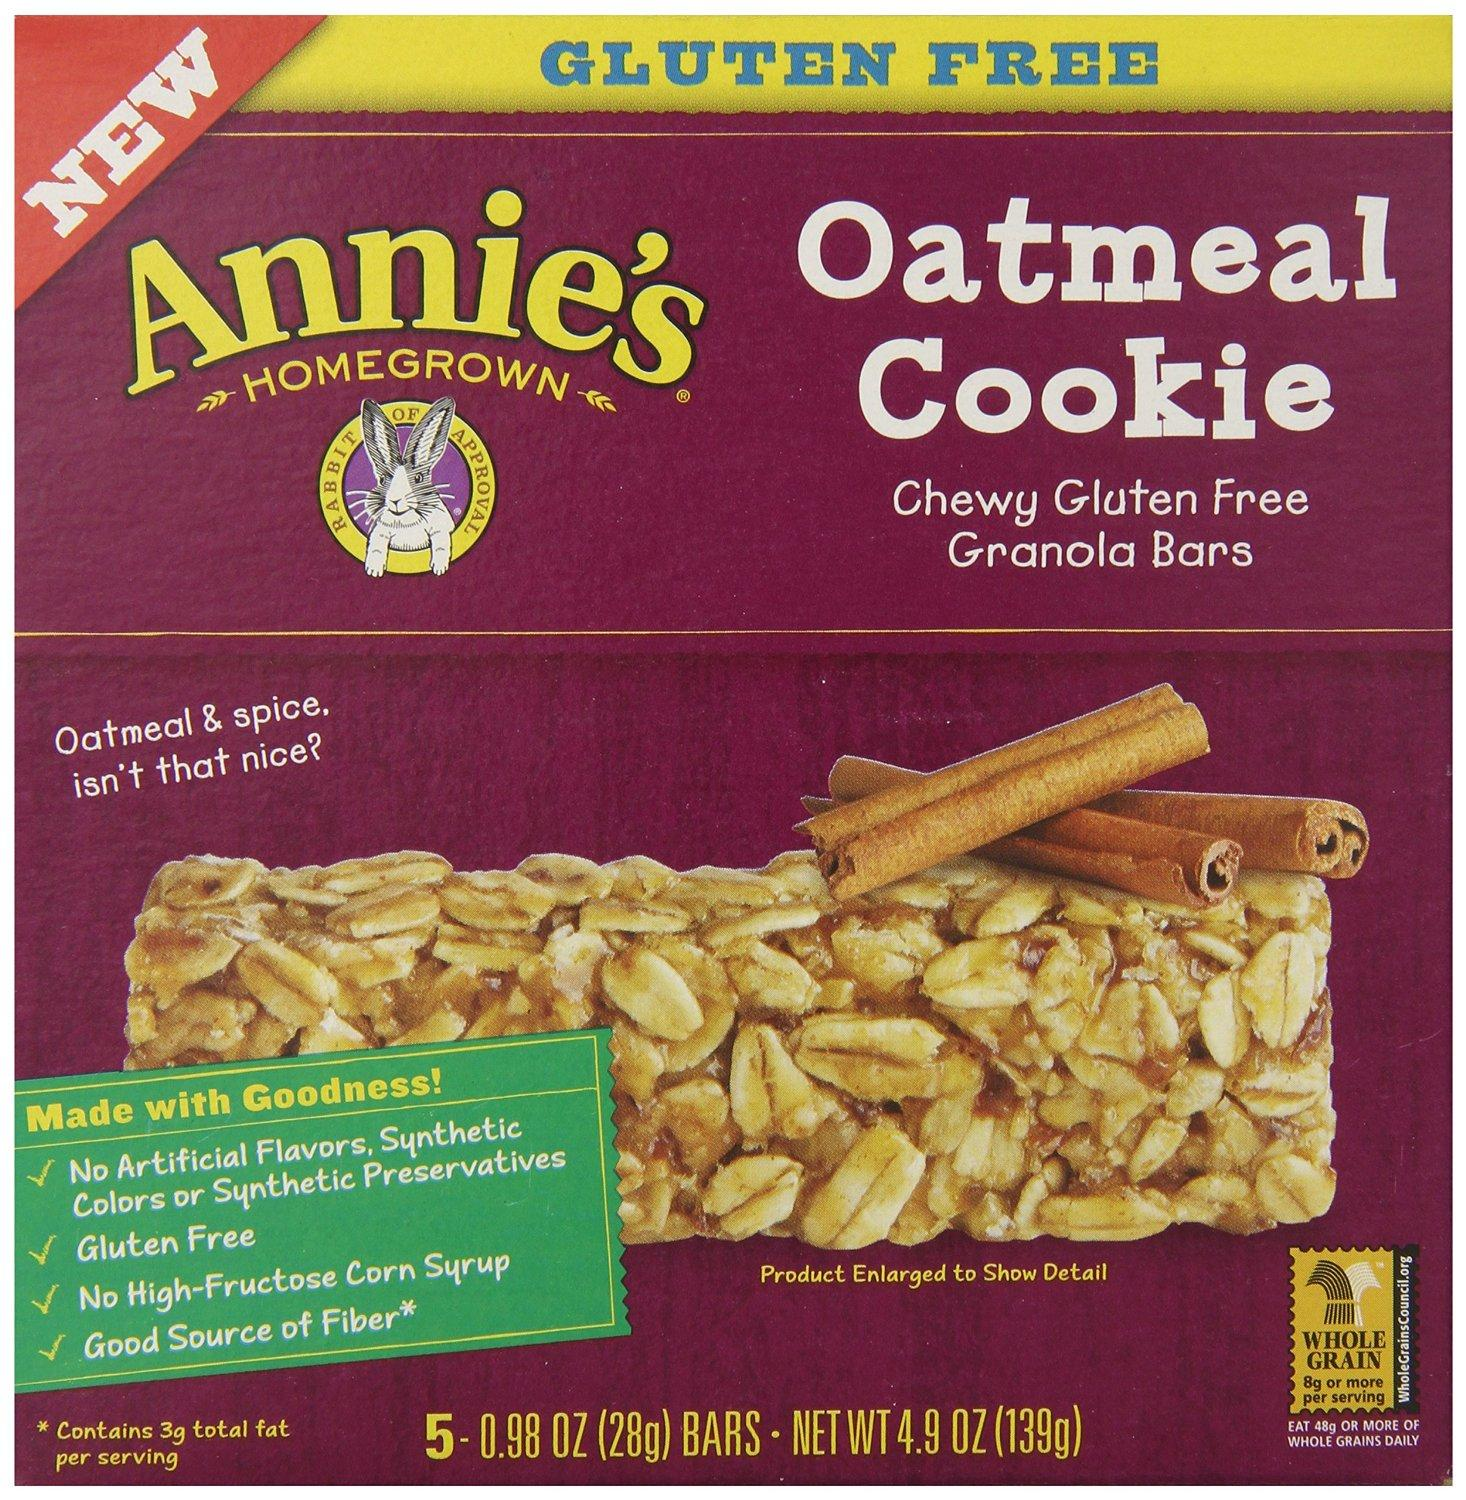 $2.12 Annie's Chewy Gluten Free Granola Bars, Oatmeal Cookie, 0.98 oz. Bars, 5 Count